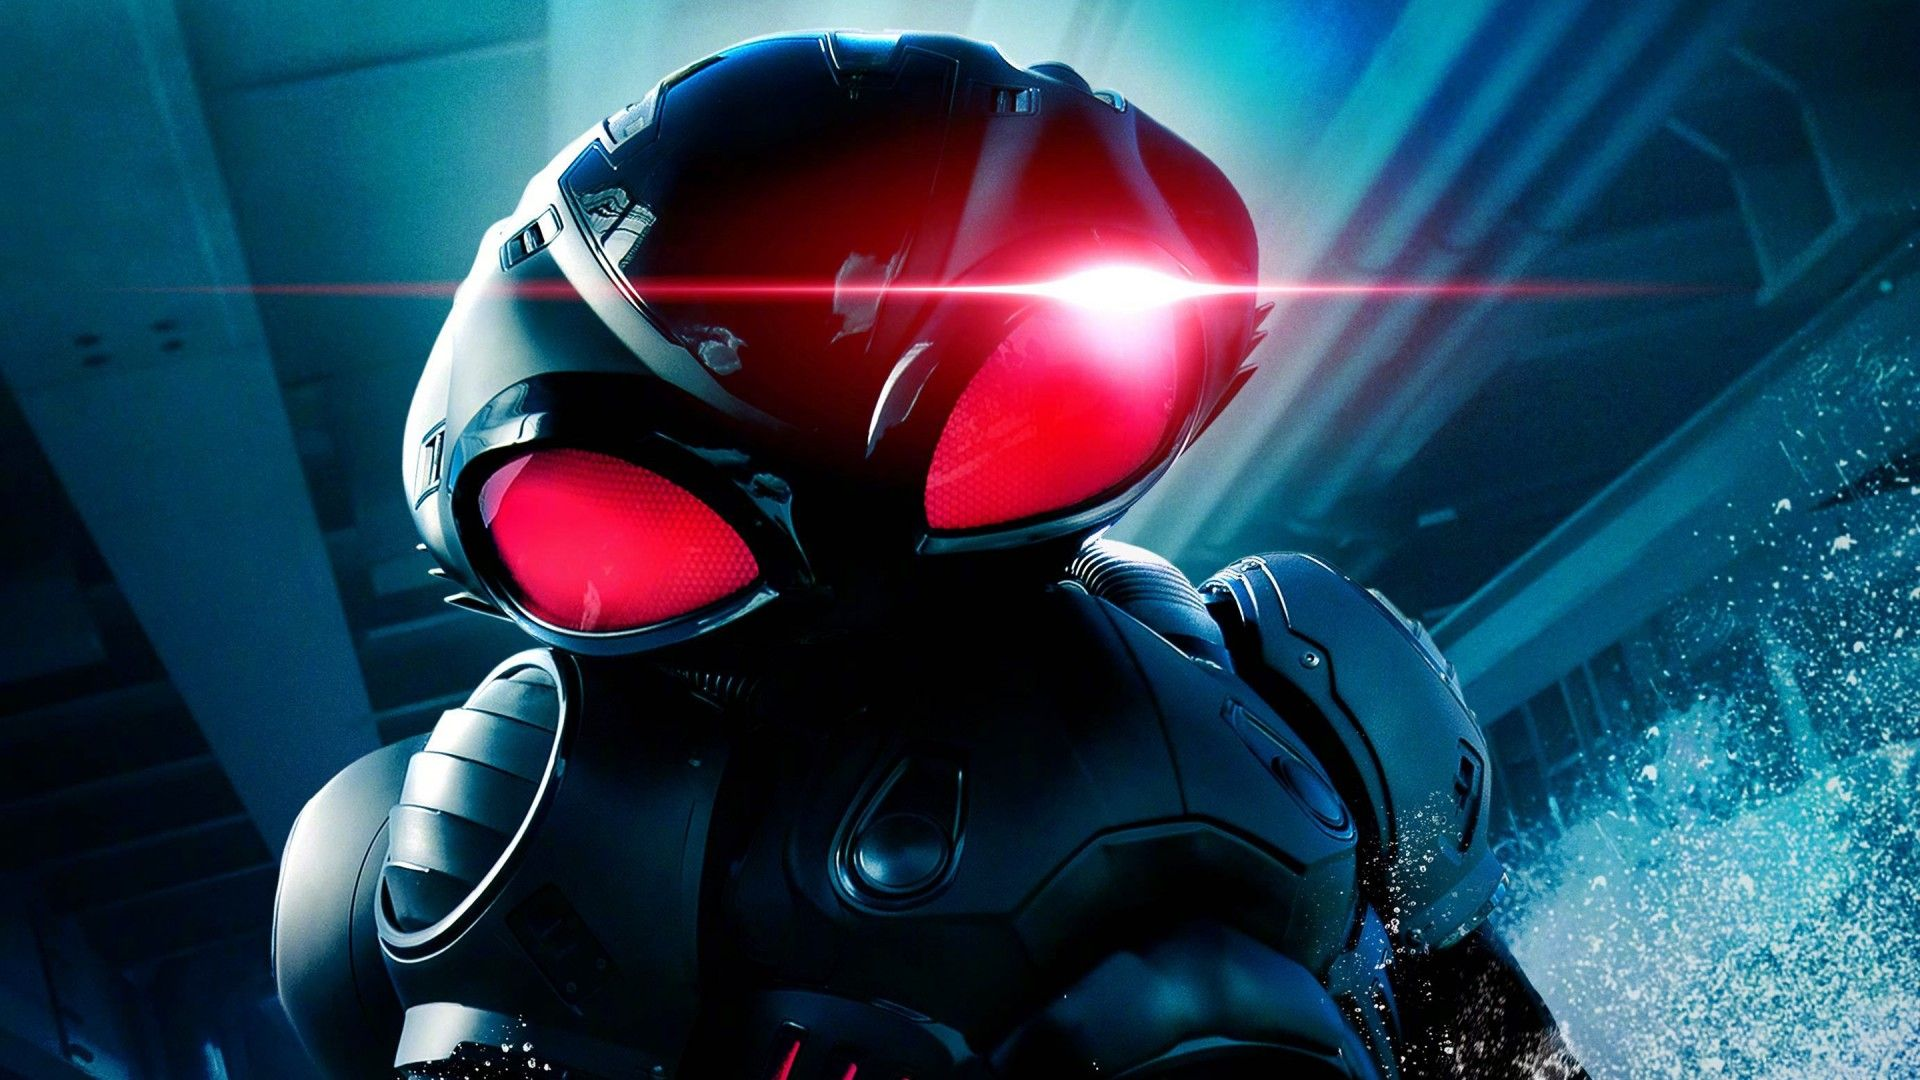 Wallpapers Black Manta, Aquaman, Supervillain, DC Comics, HD